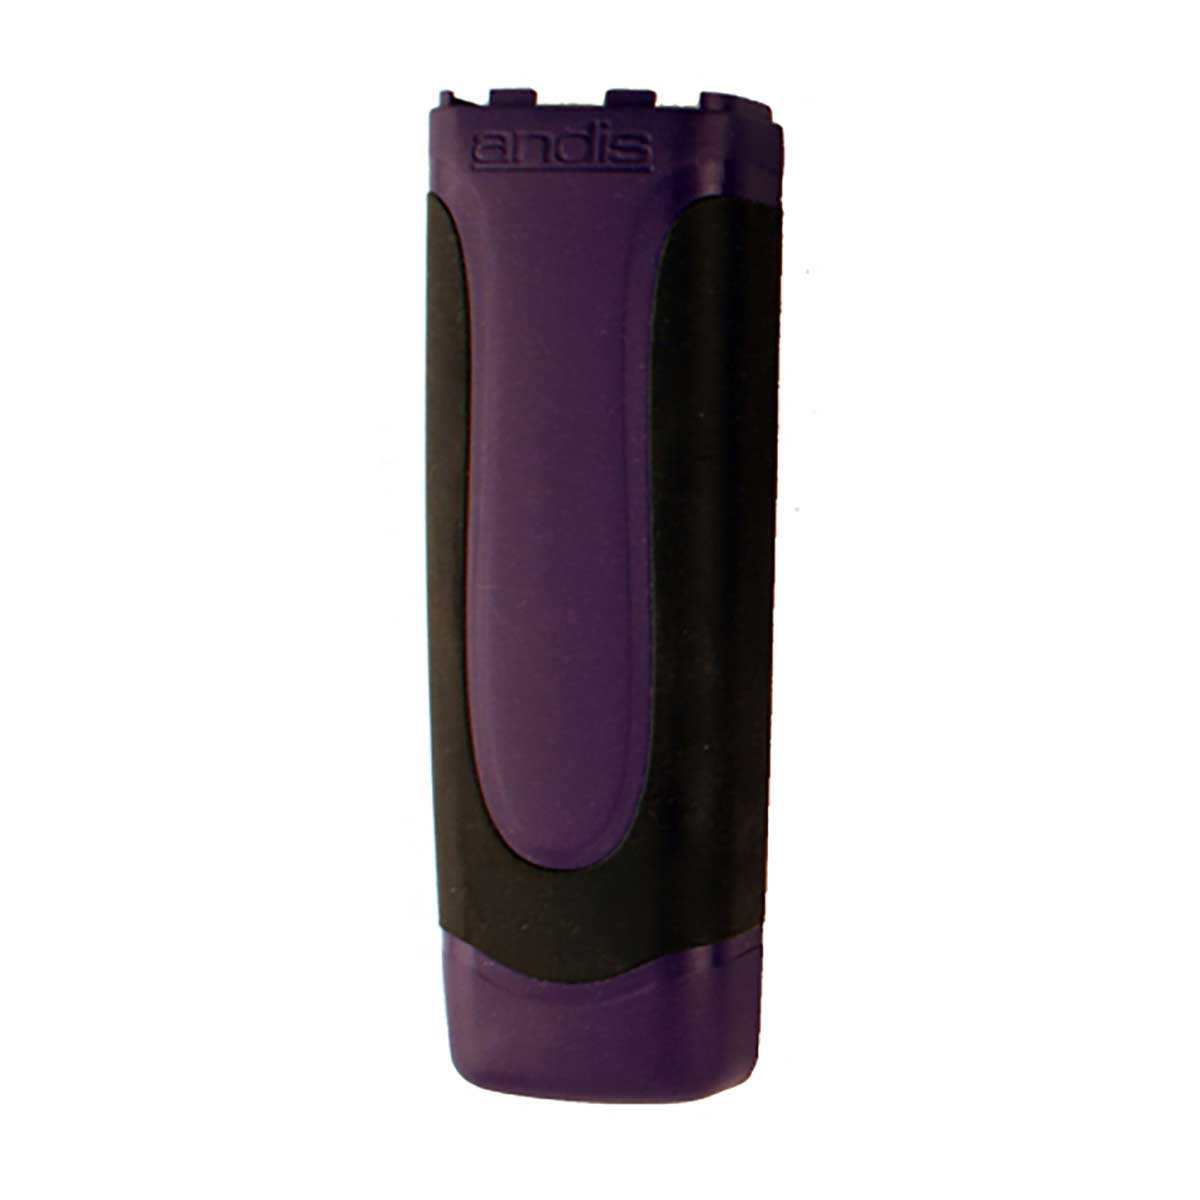 Purple Upper Housing for Andis 2-Speed AGP Clipper at Ryan's Pet Supplies